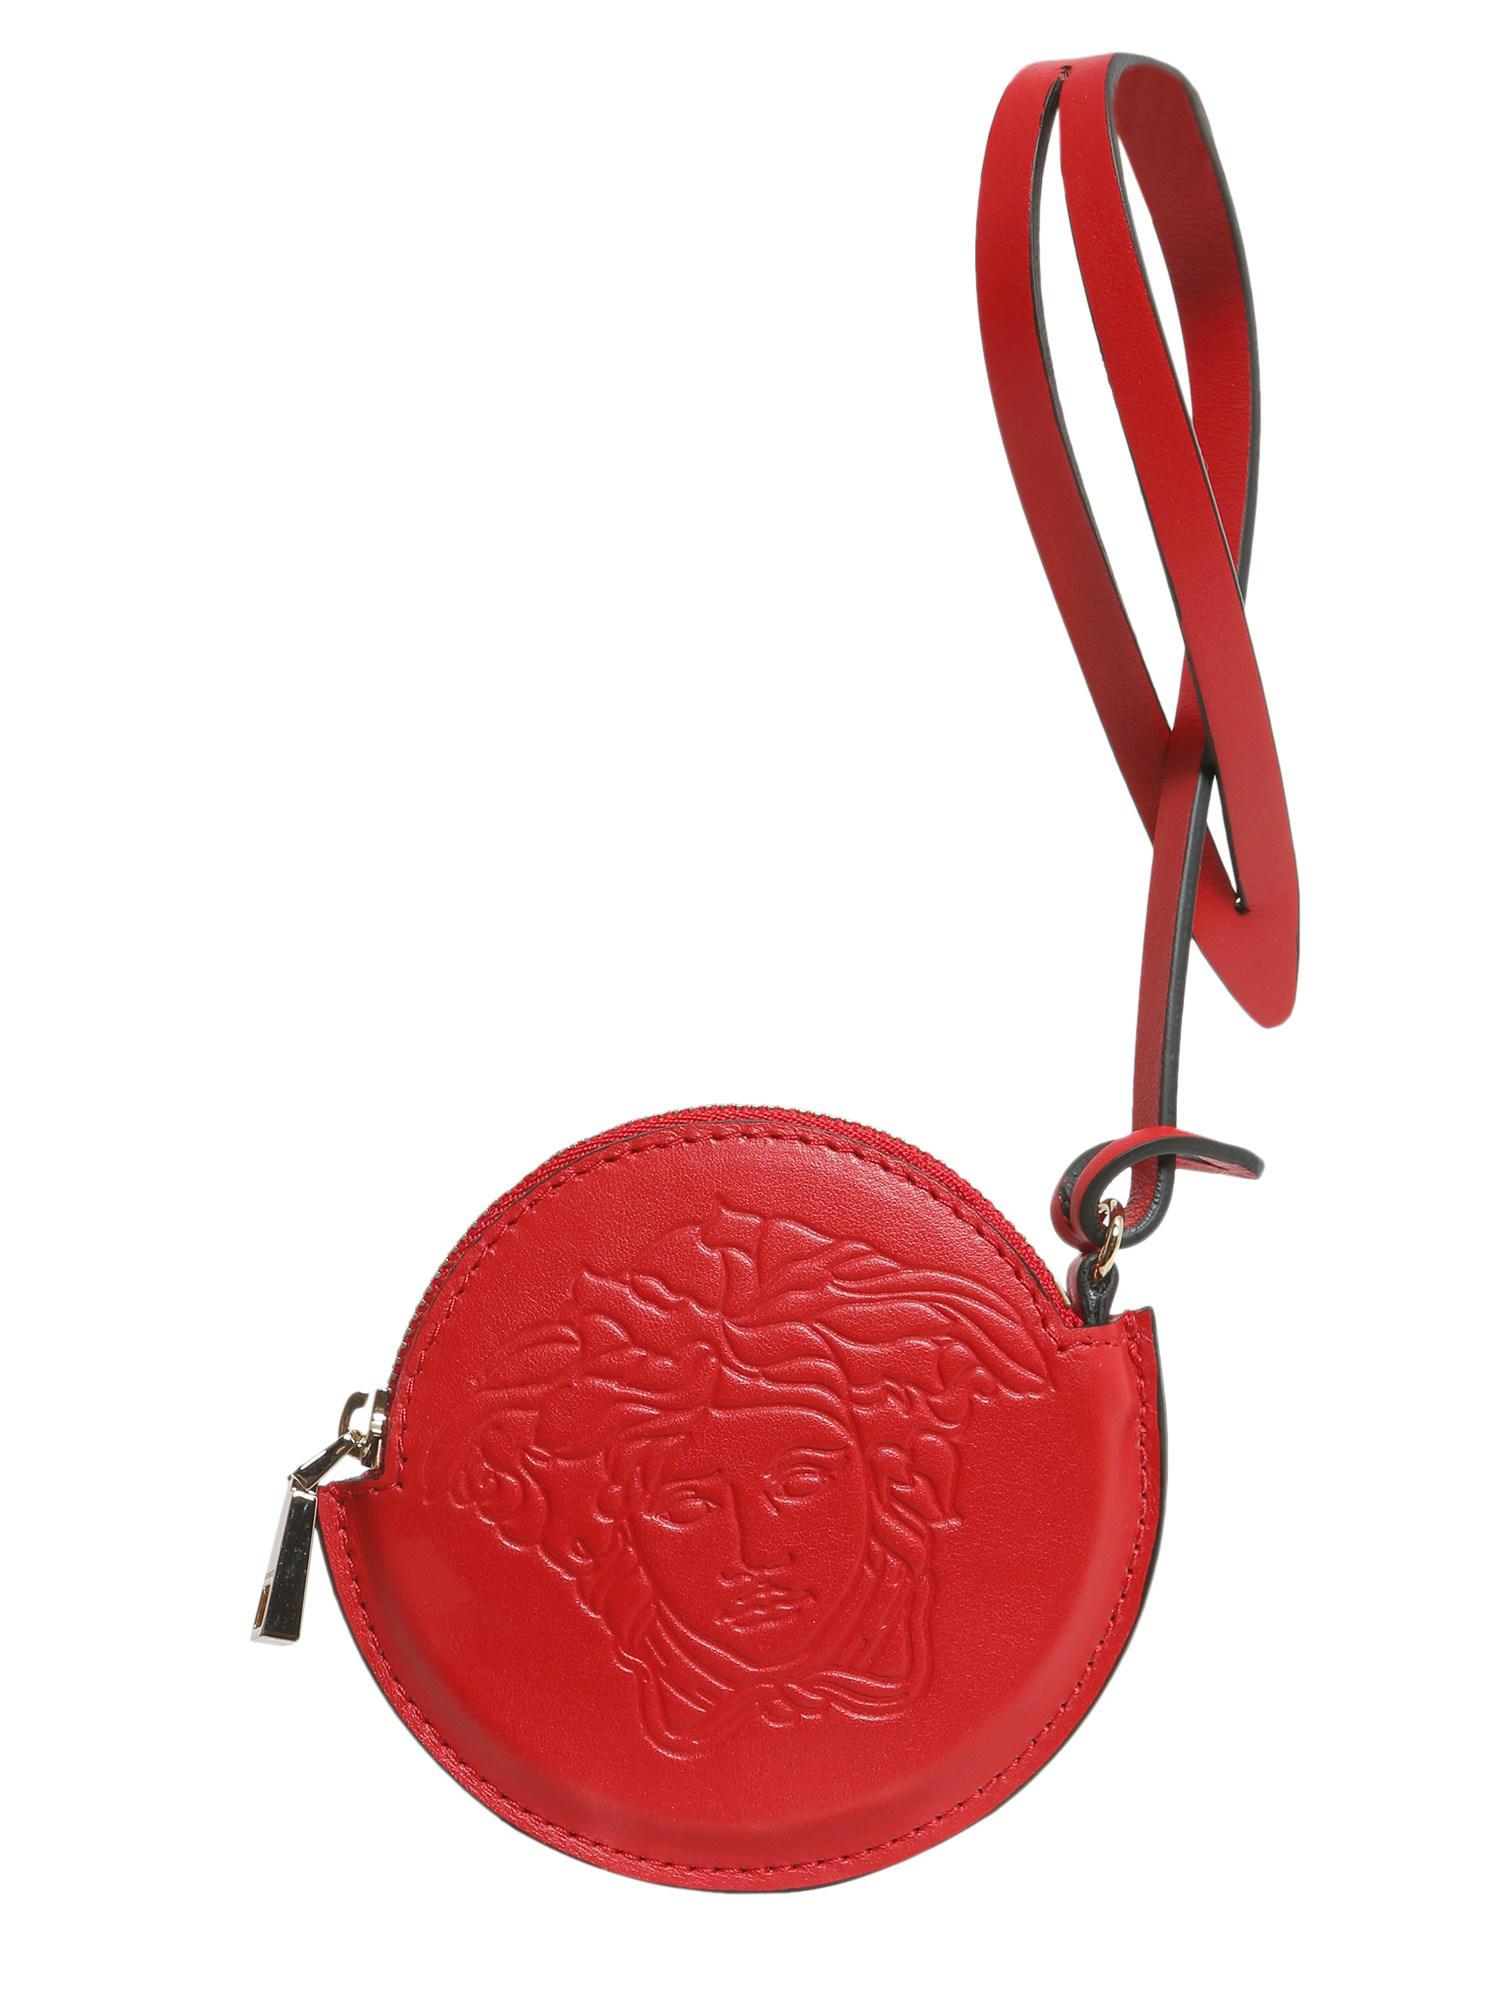 192cc5ee73a4 Versace Leather Medusa Head Charm in Red - Lyst